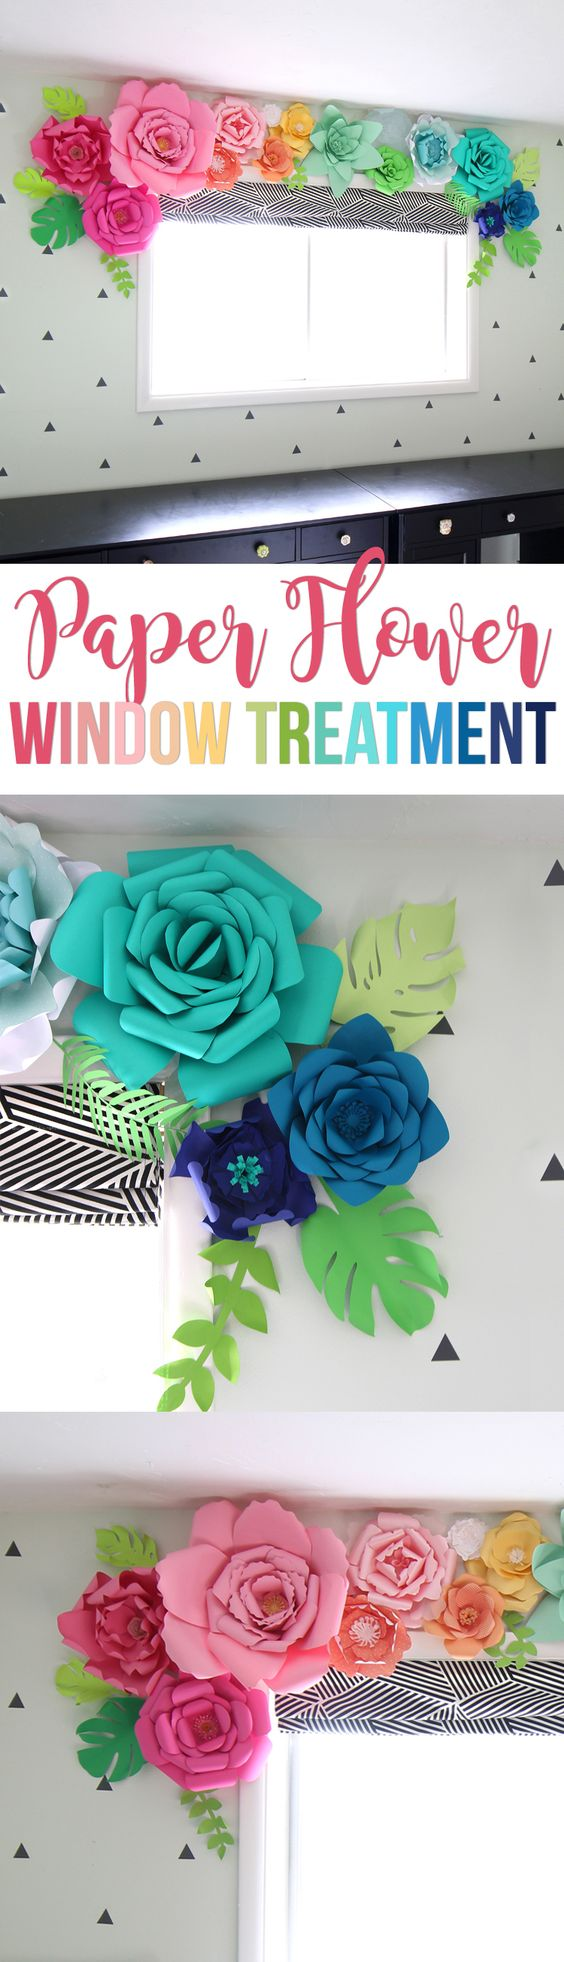 20 Awesome Diy Projects To Decorate A Girl S Bedroom Hative